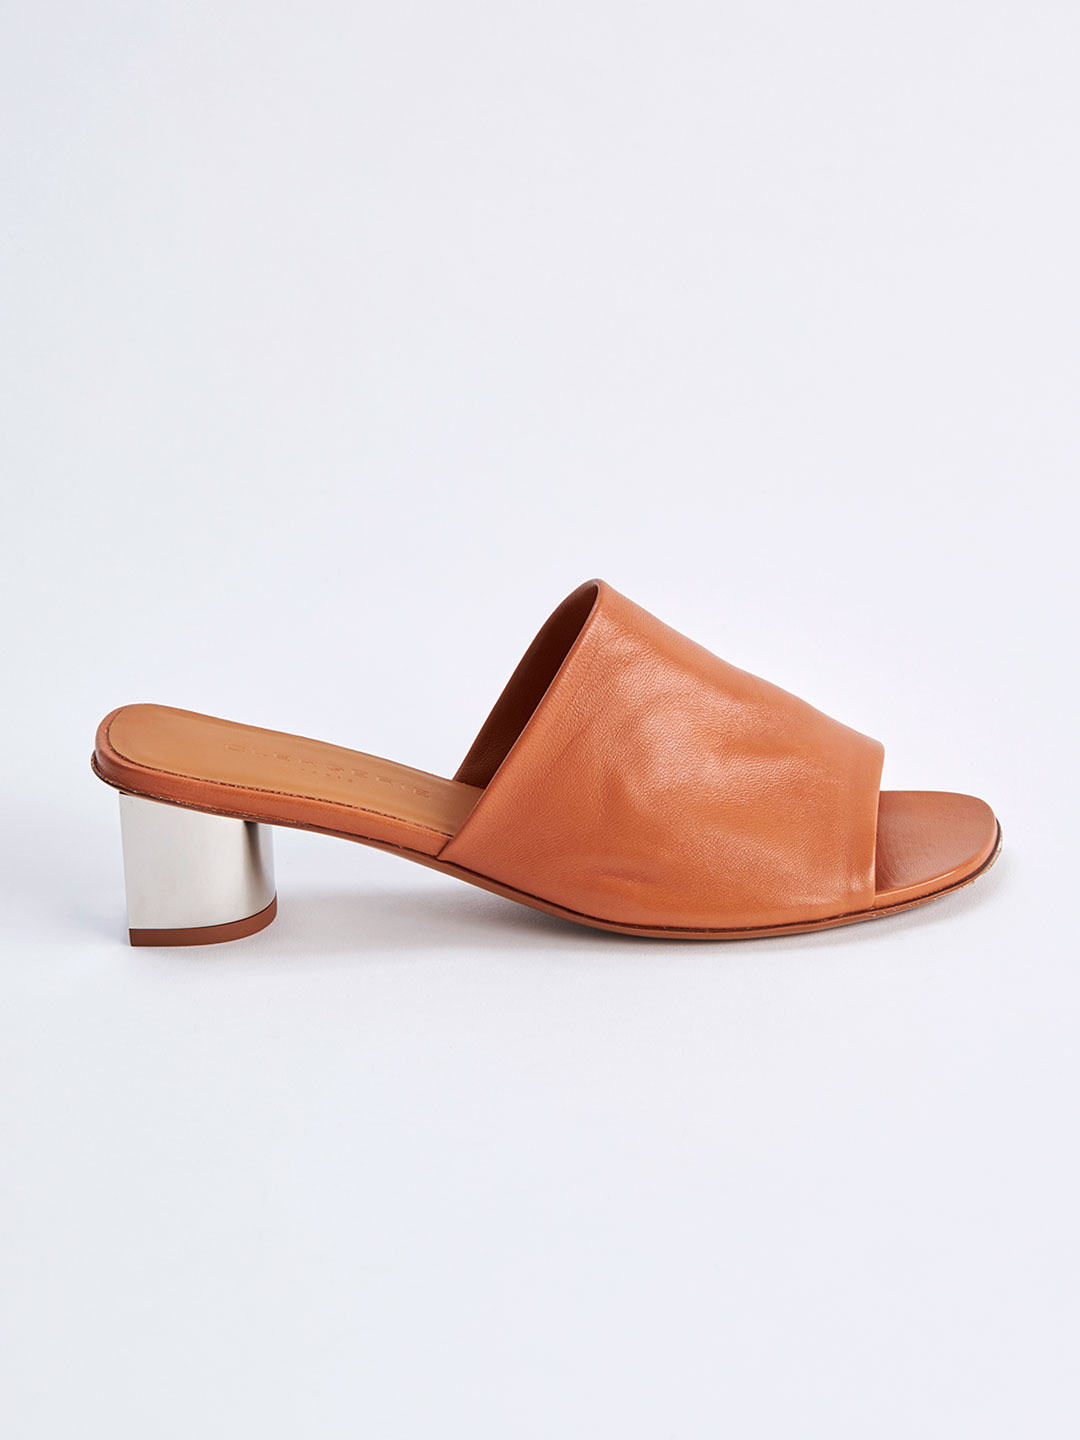 LEA Middle Heel Mules - Brown